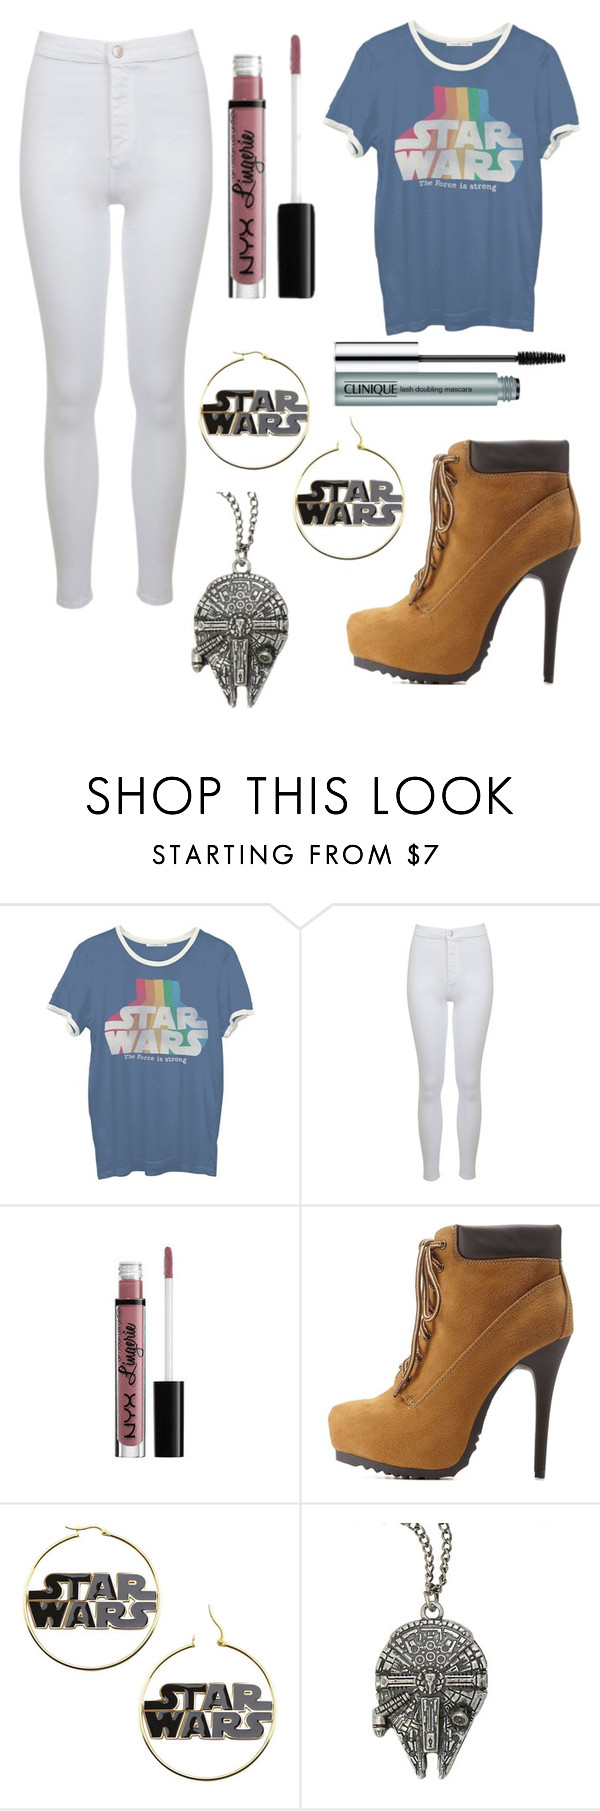 """Star Wars Lovin"" by breona-nytalia ❤ liked on Polyvore featuring moda, Junk Food Clothing, Miss Selfridge, Charlotte Russe i Clinique"